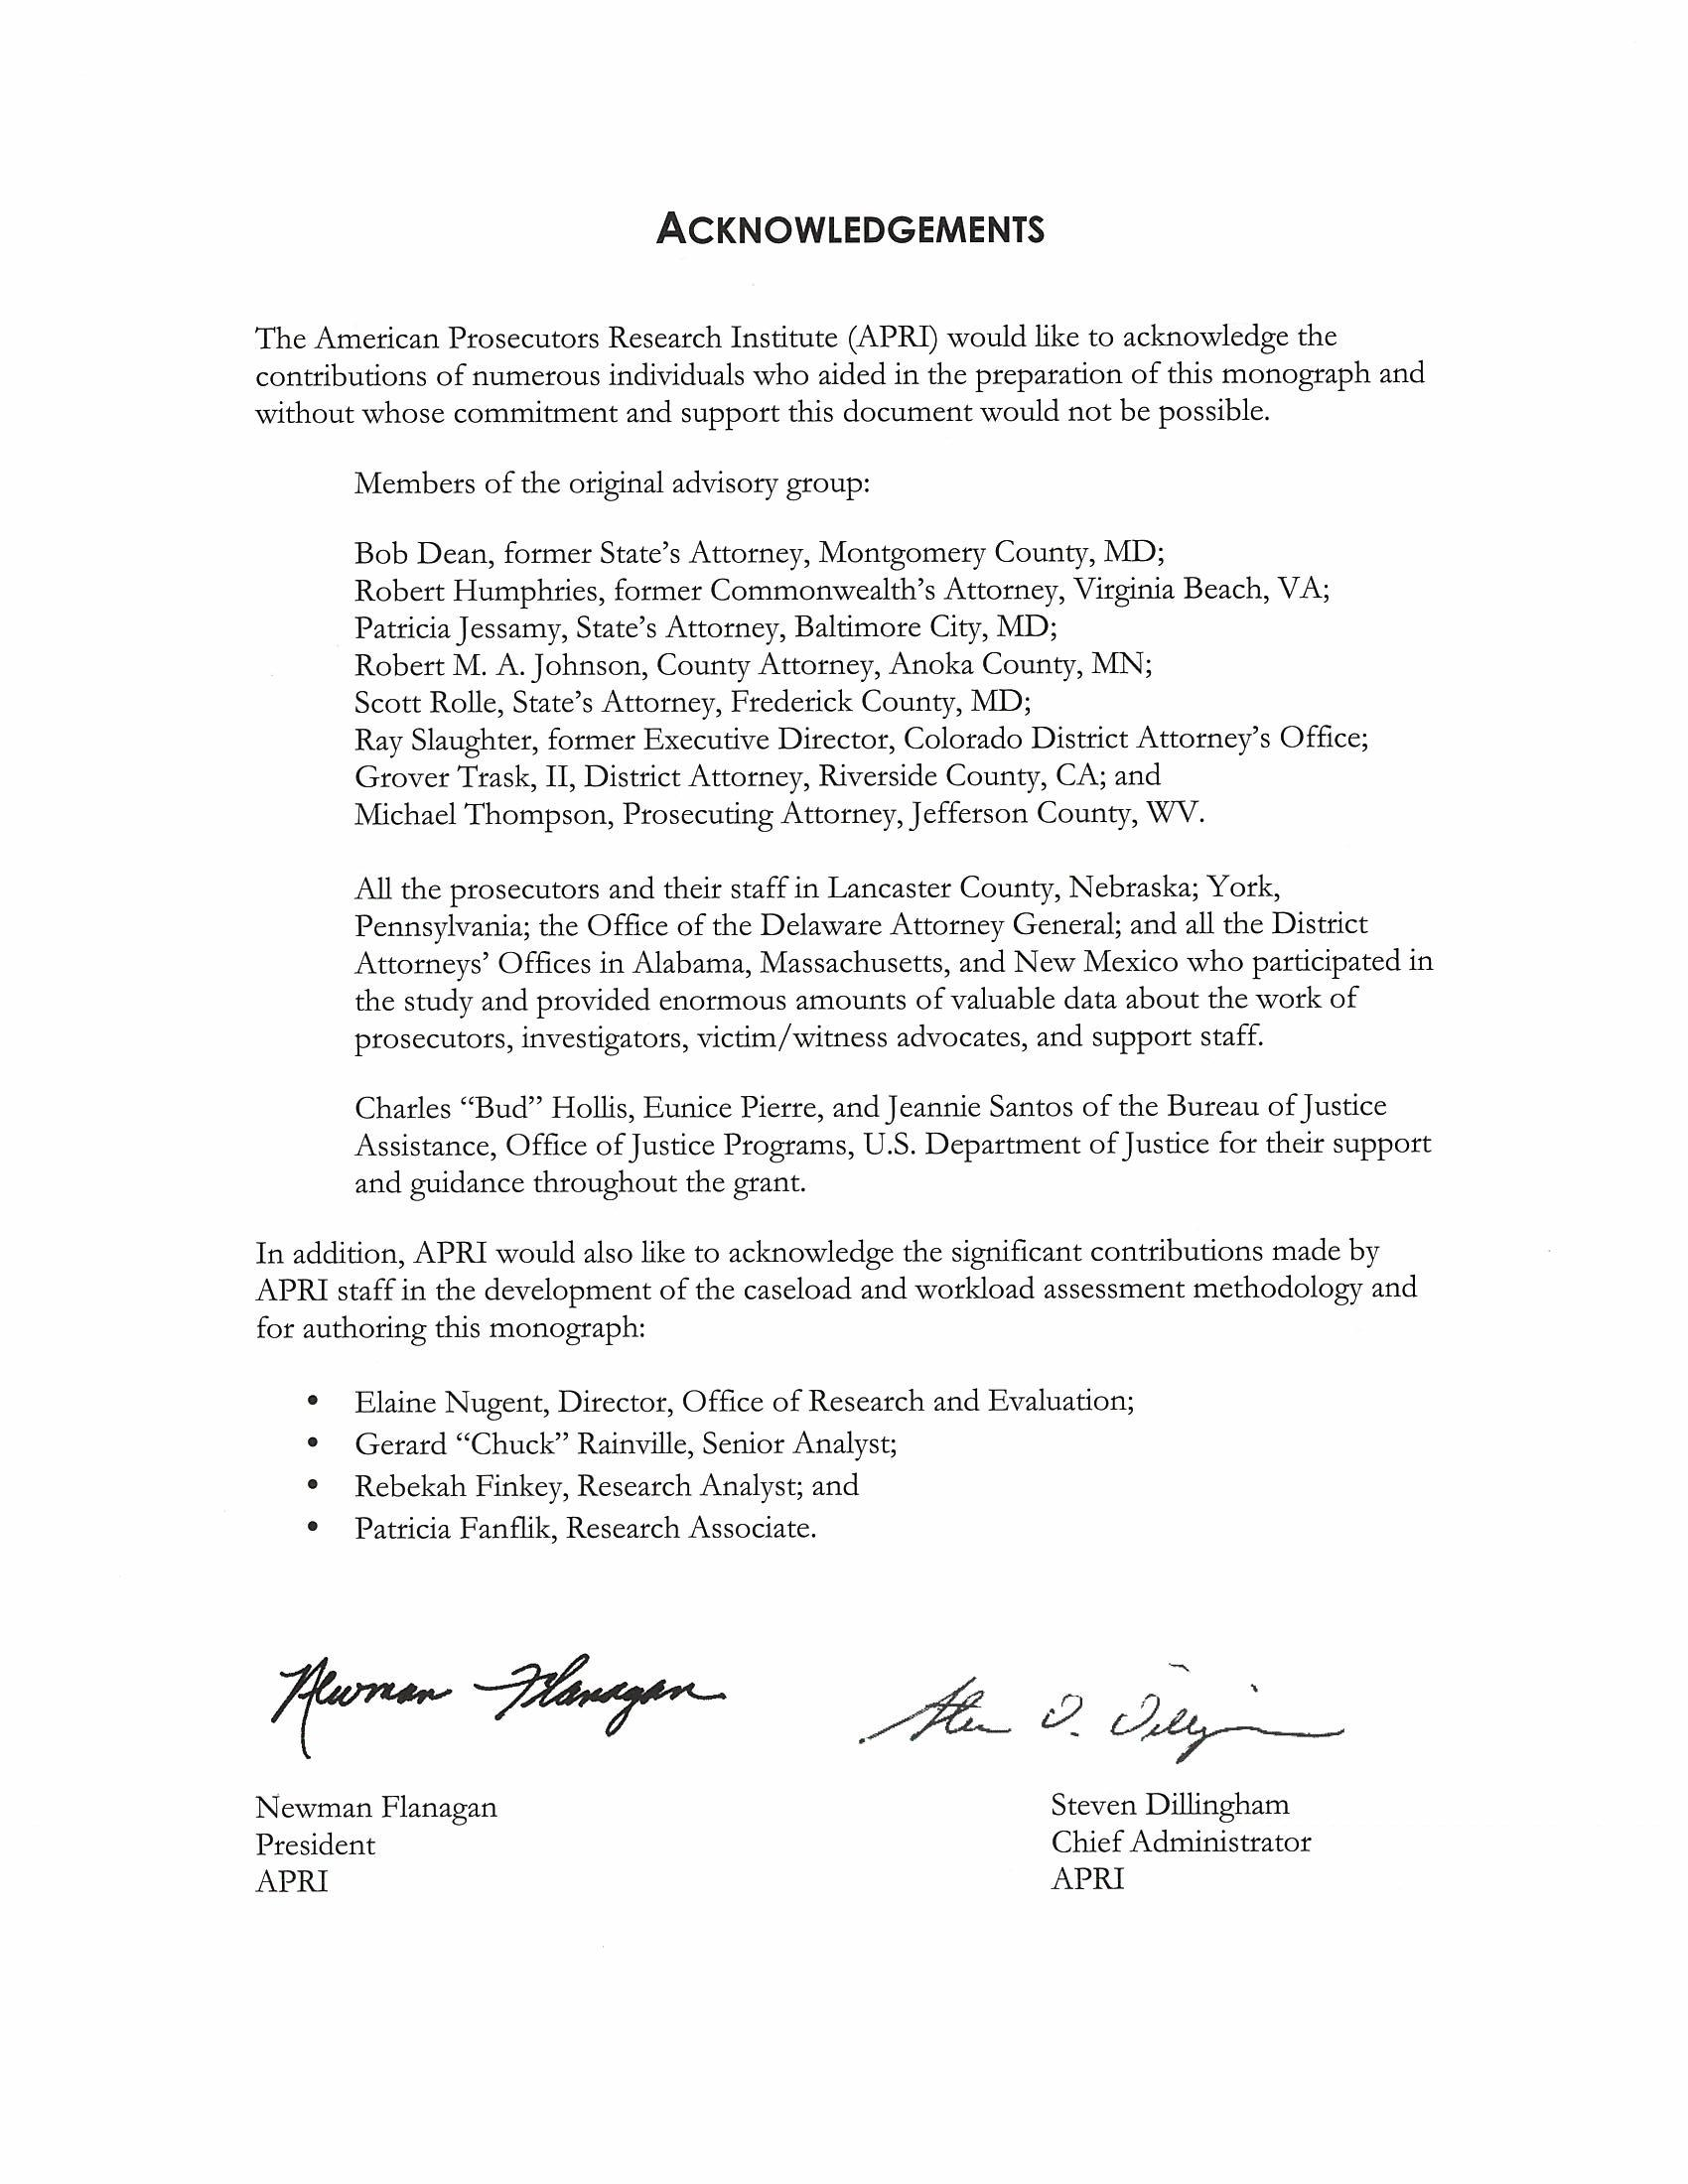 ACKNOWLEDGEMENTS The American Prosecutors Research Institute (APRI) would like to acknowledge the contributions of numerous individuals who aided in the preparation of this monograph and without